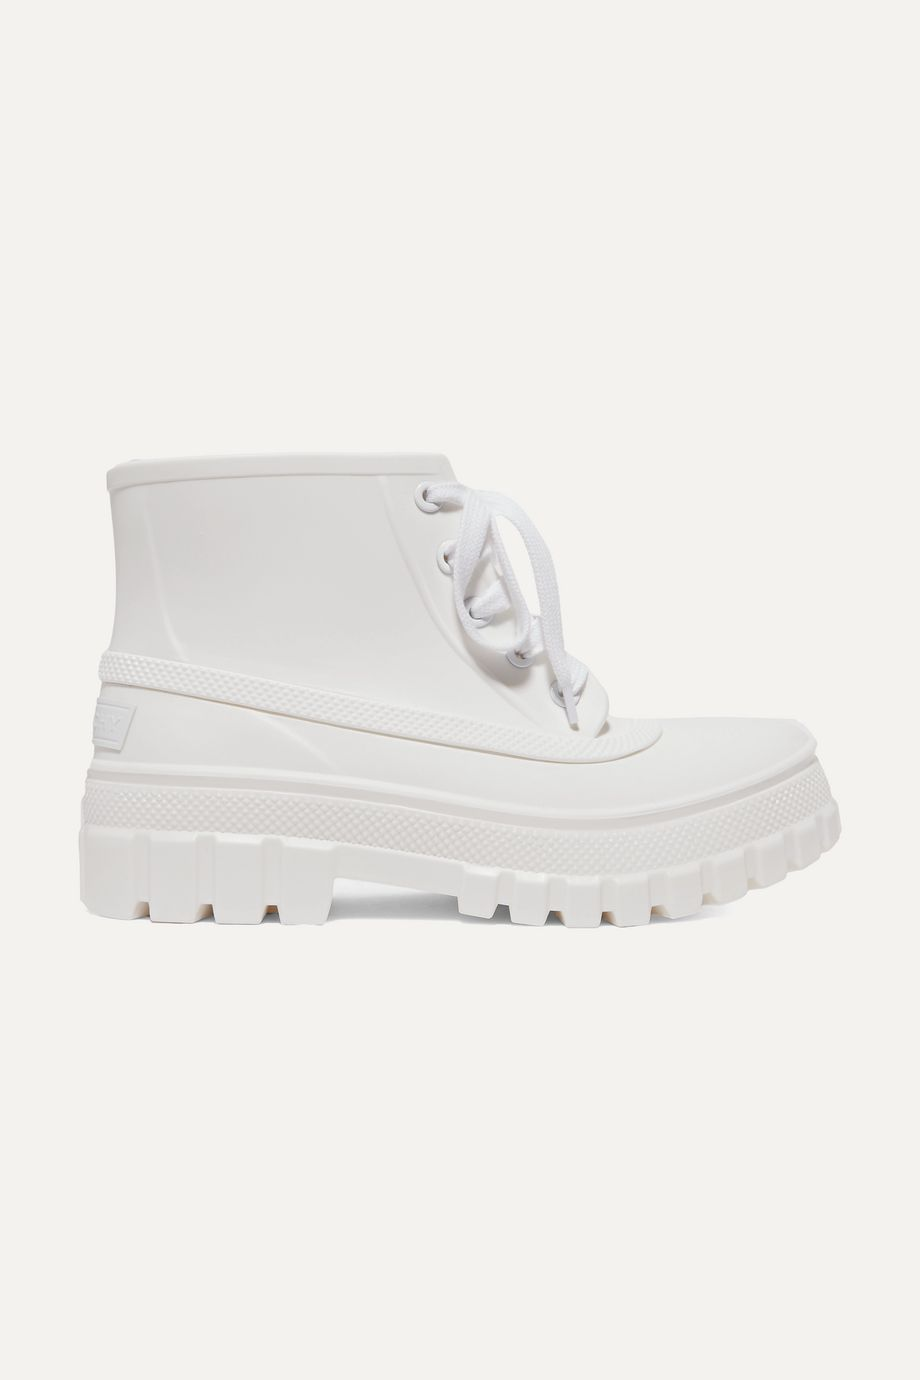 Givenchy Glaston rubber ankle boots